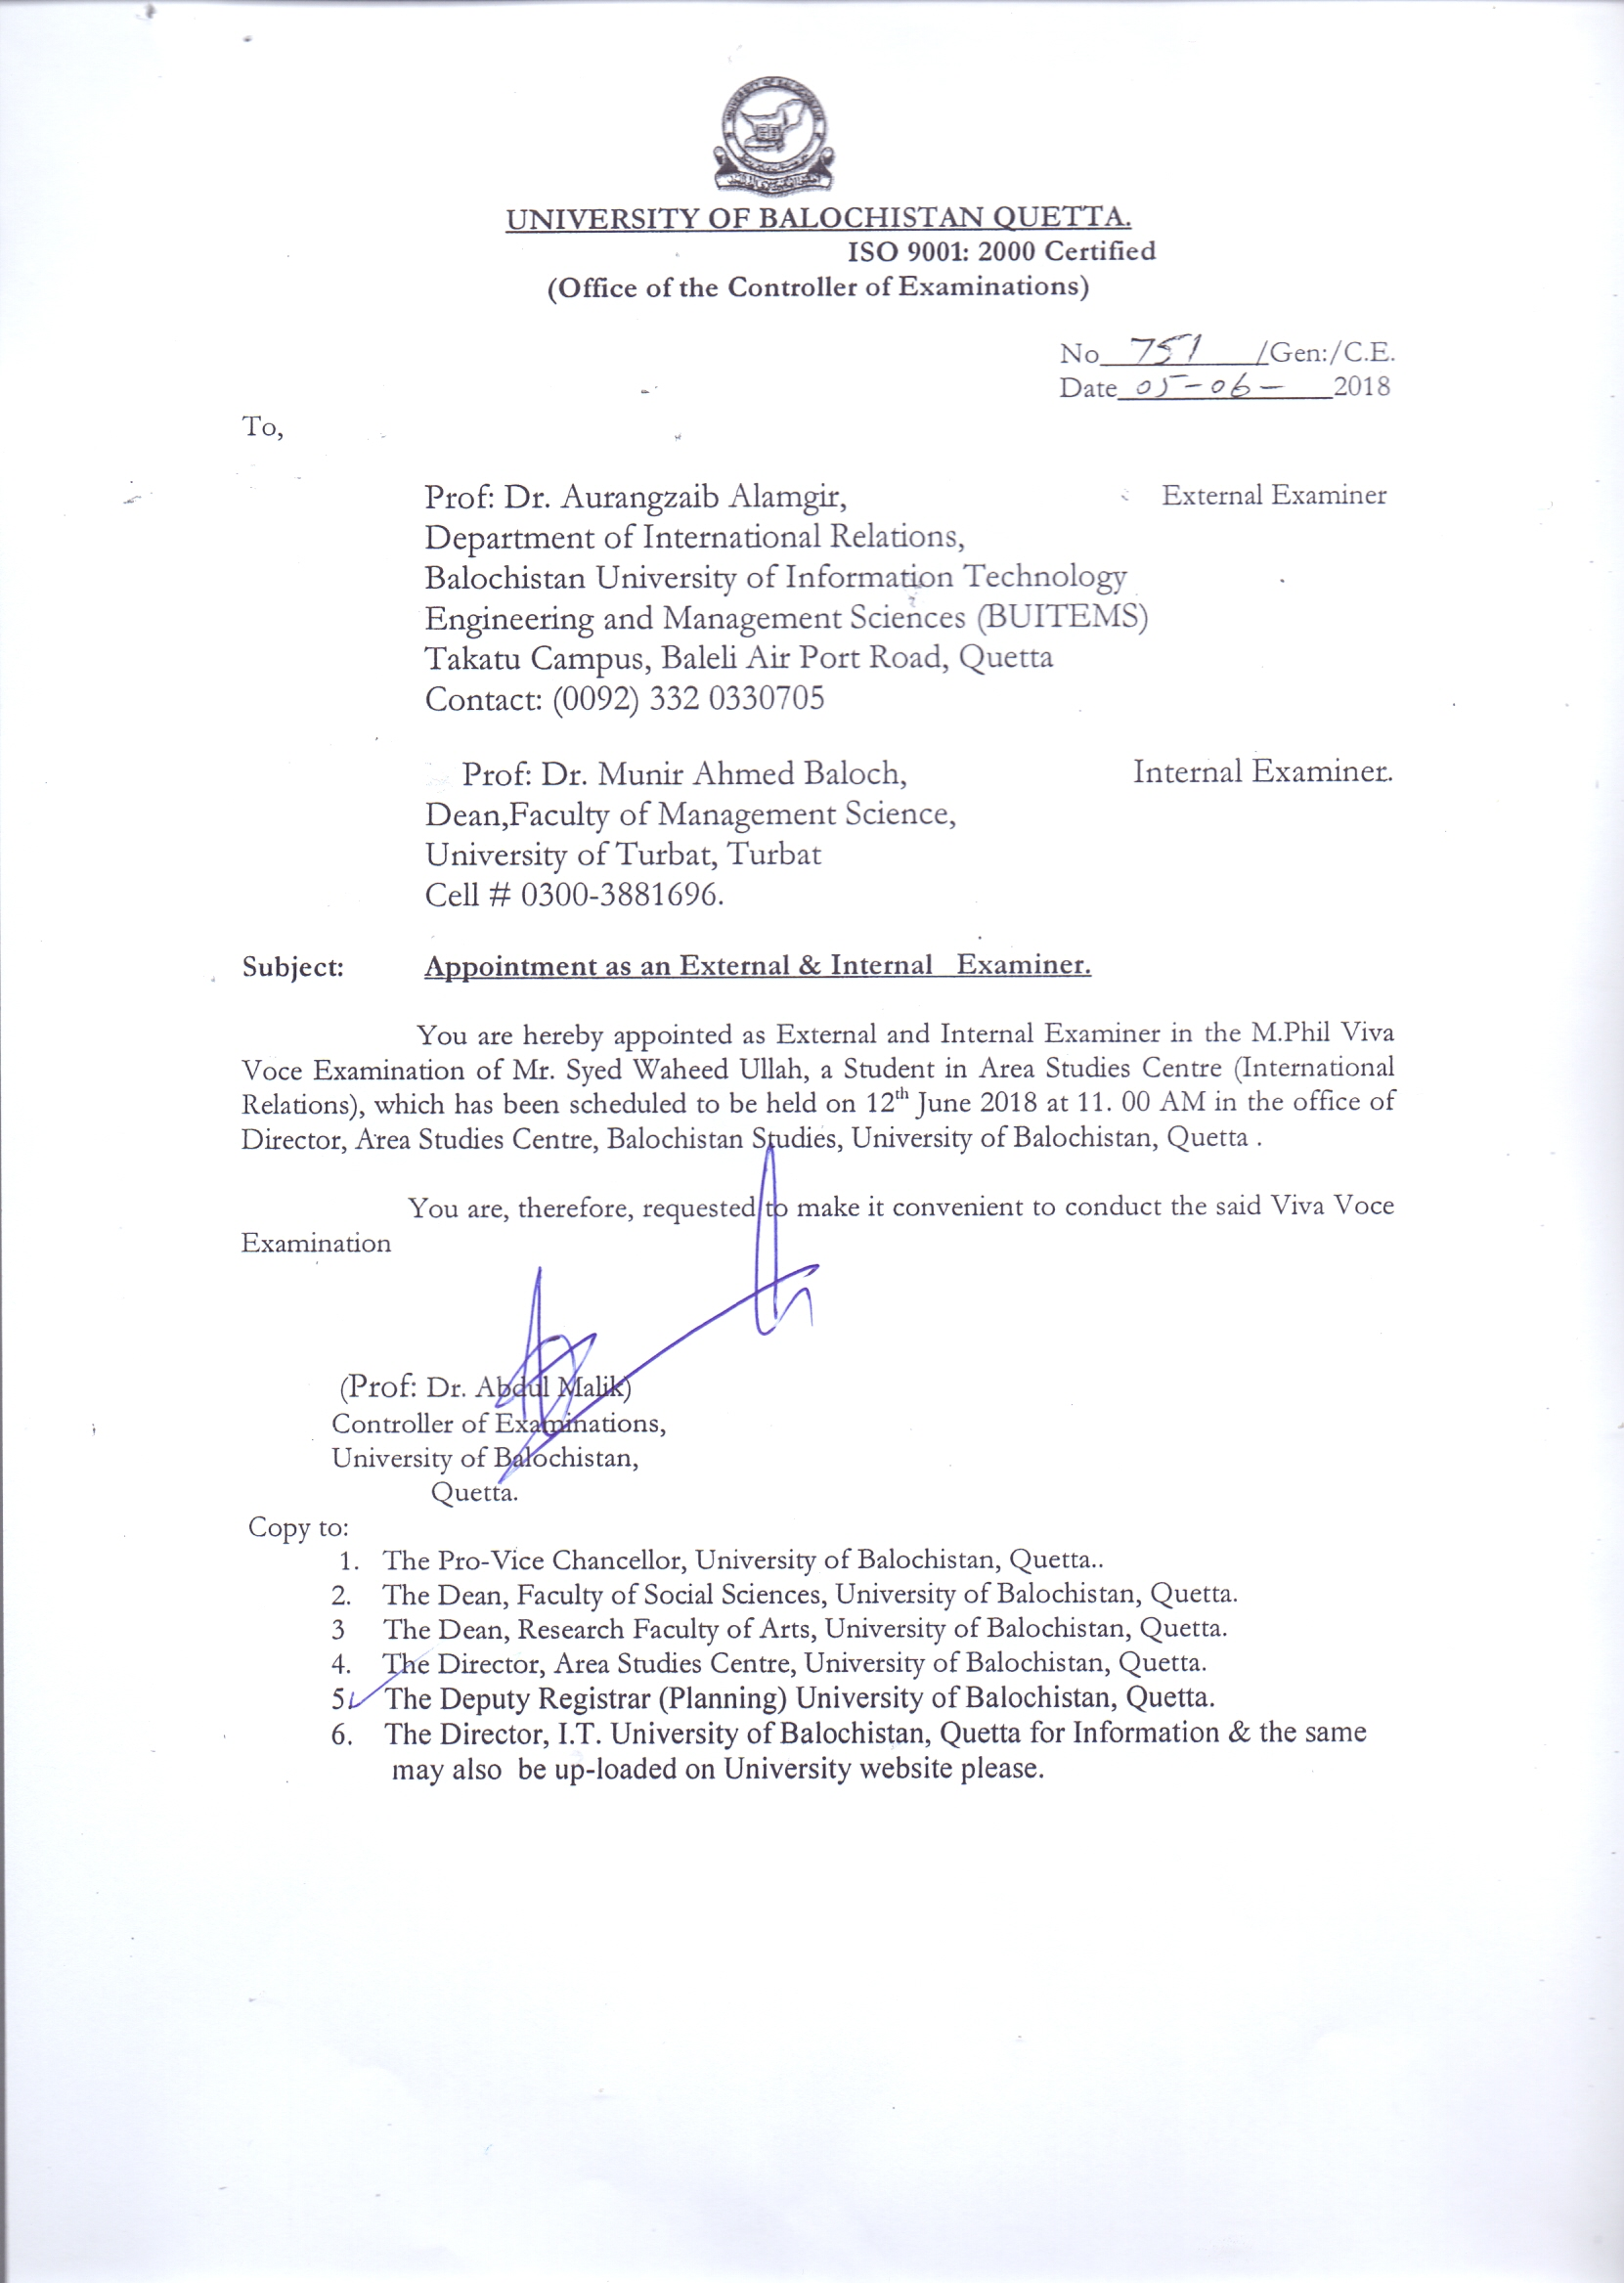 viva voce examination of ms shumaila rasheed mphil in english literature which has been rescheduled to be held on june 7 2018 at 1130 am in the video